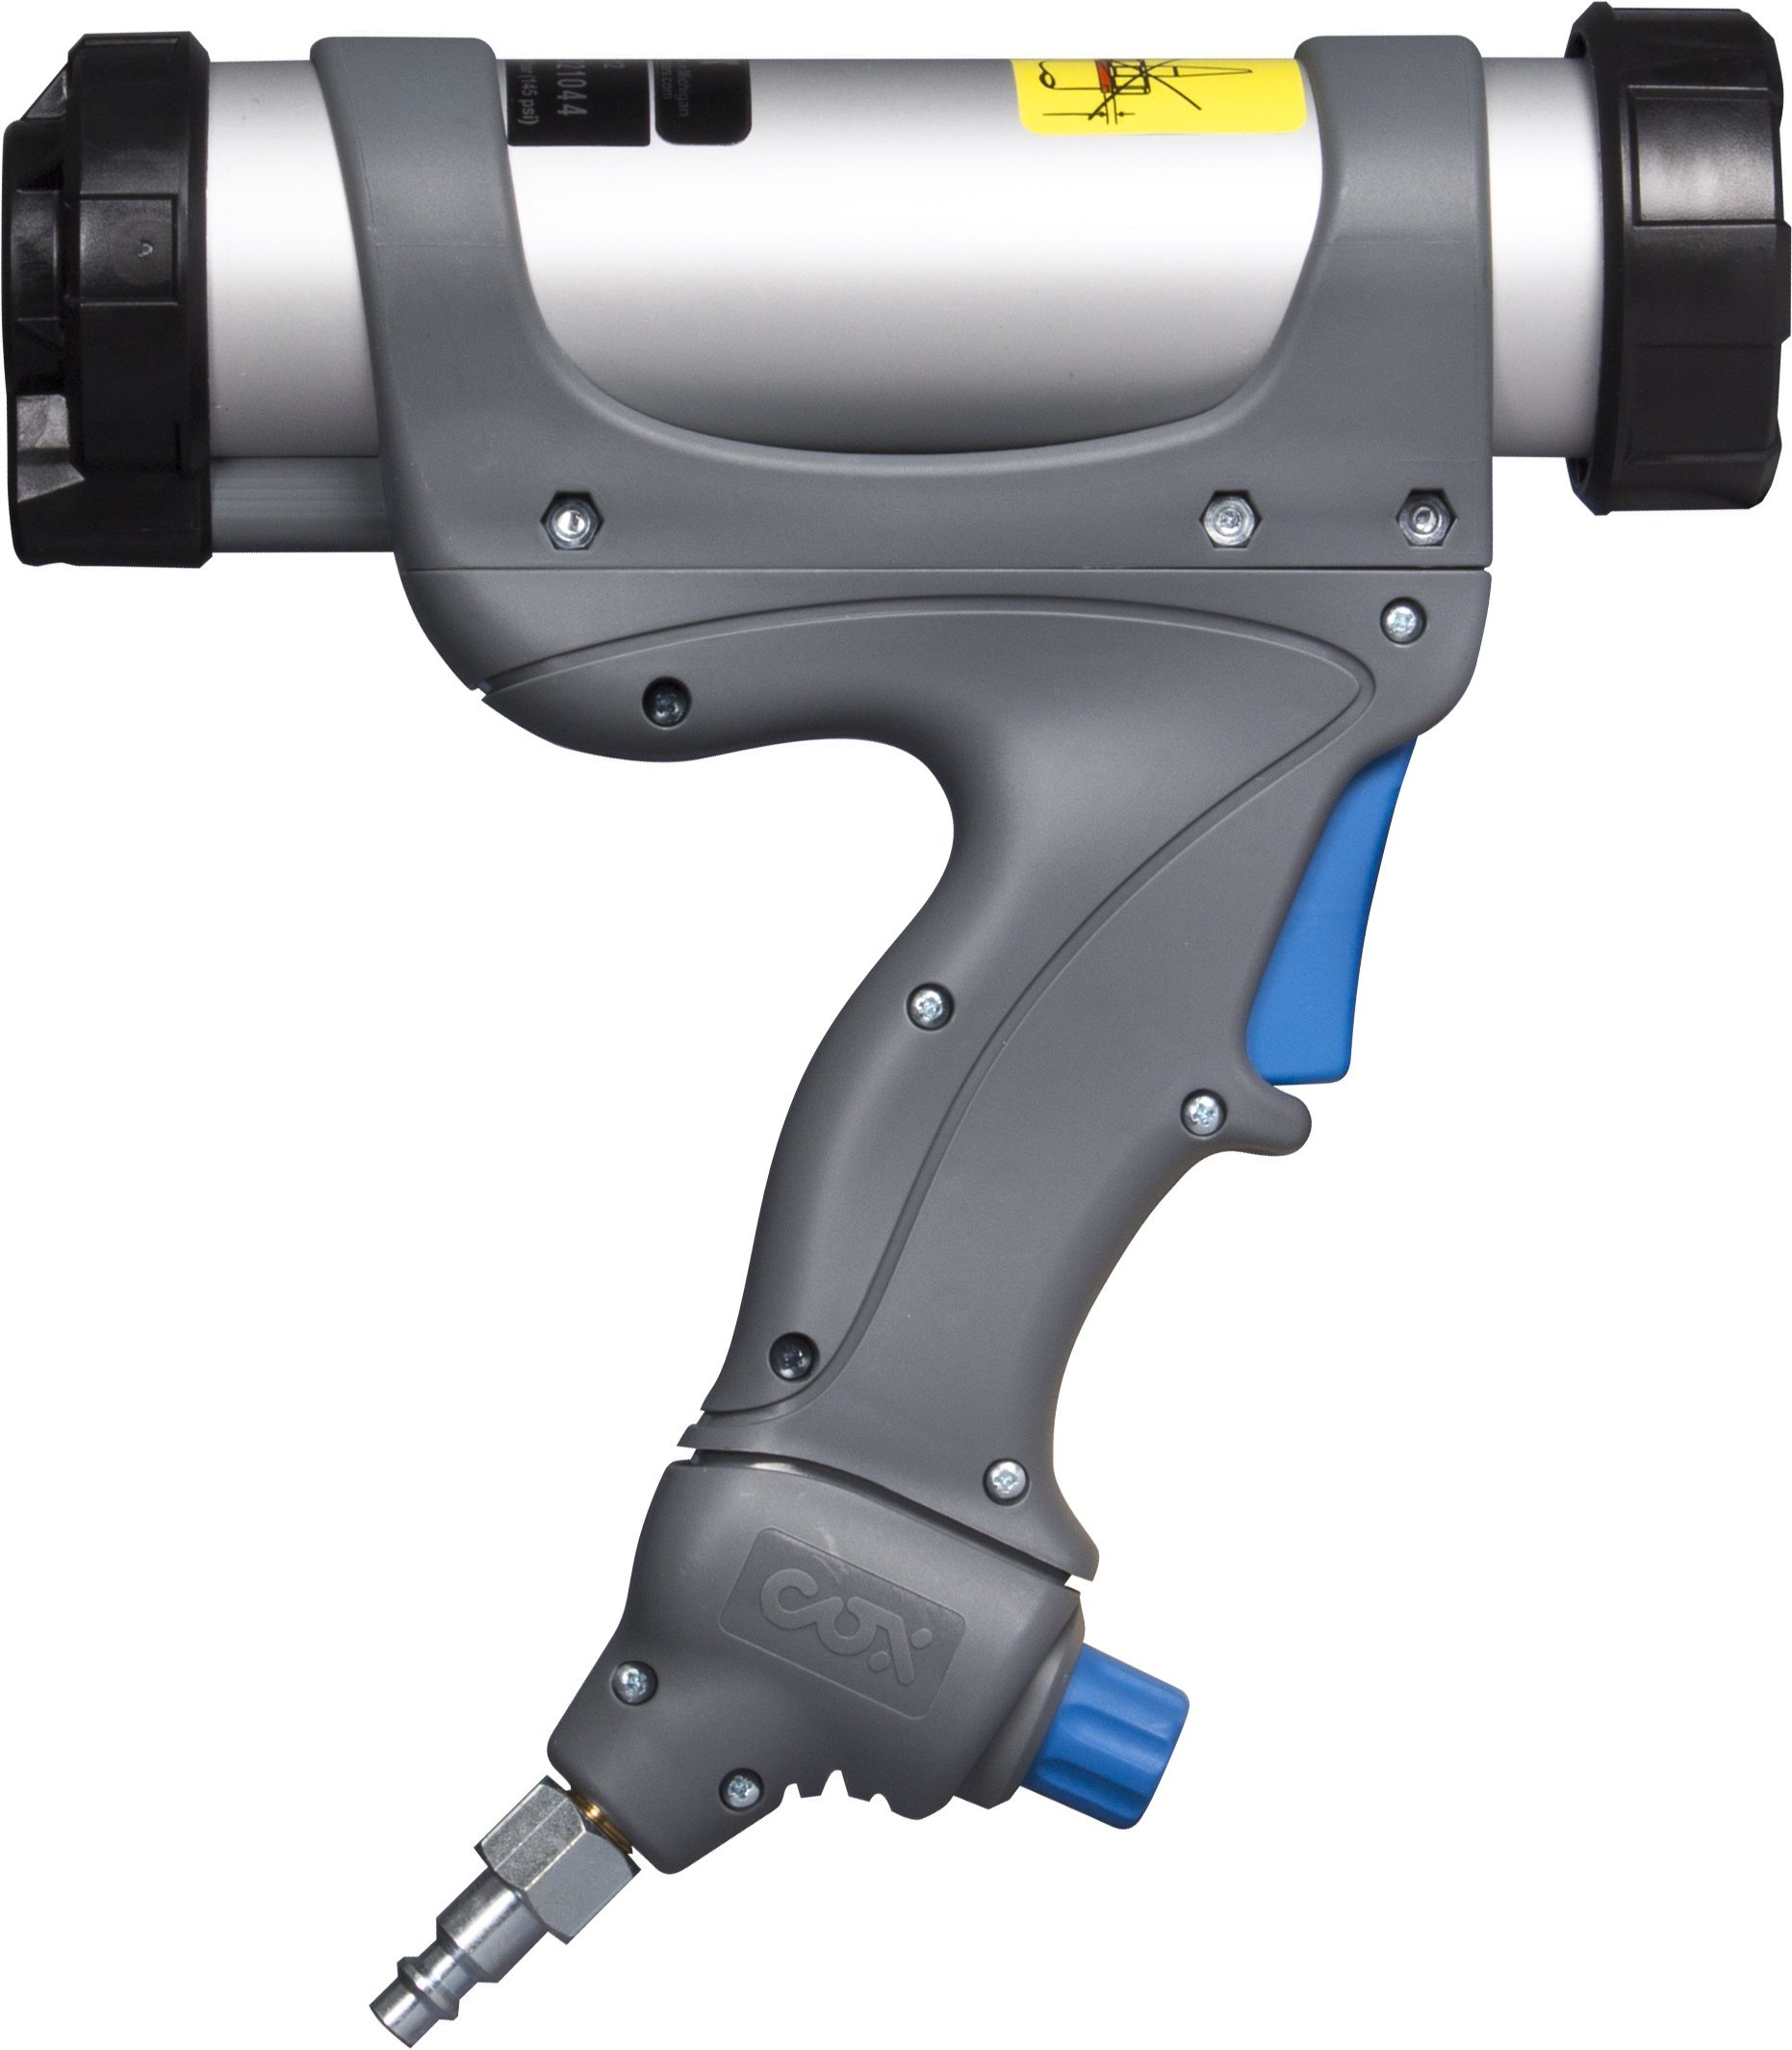 SEM 29342 1K Pneumatic Applicator Gun